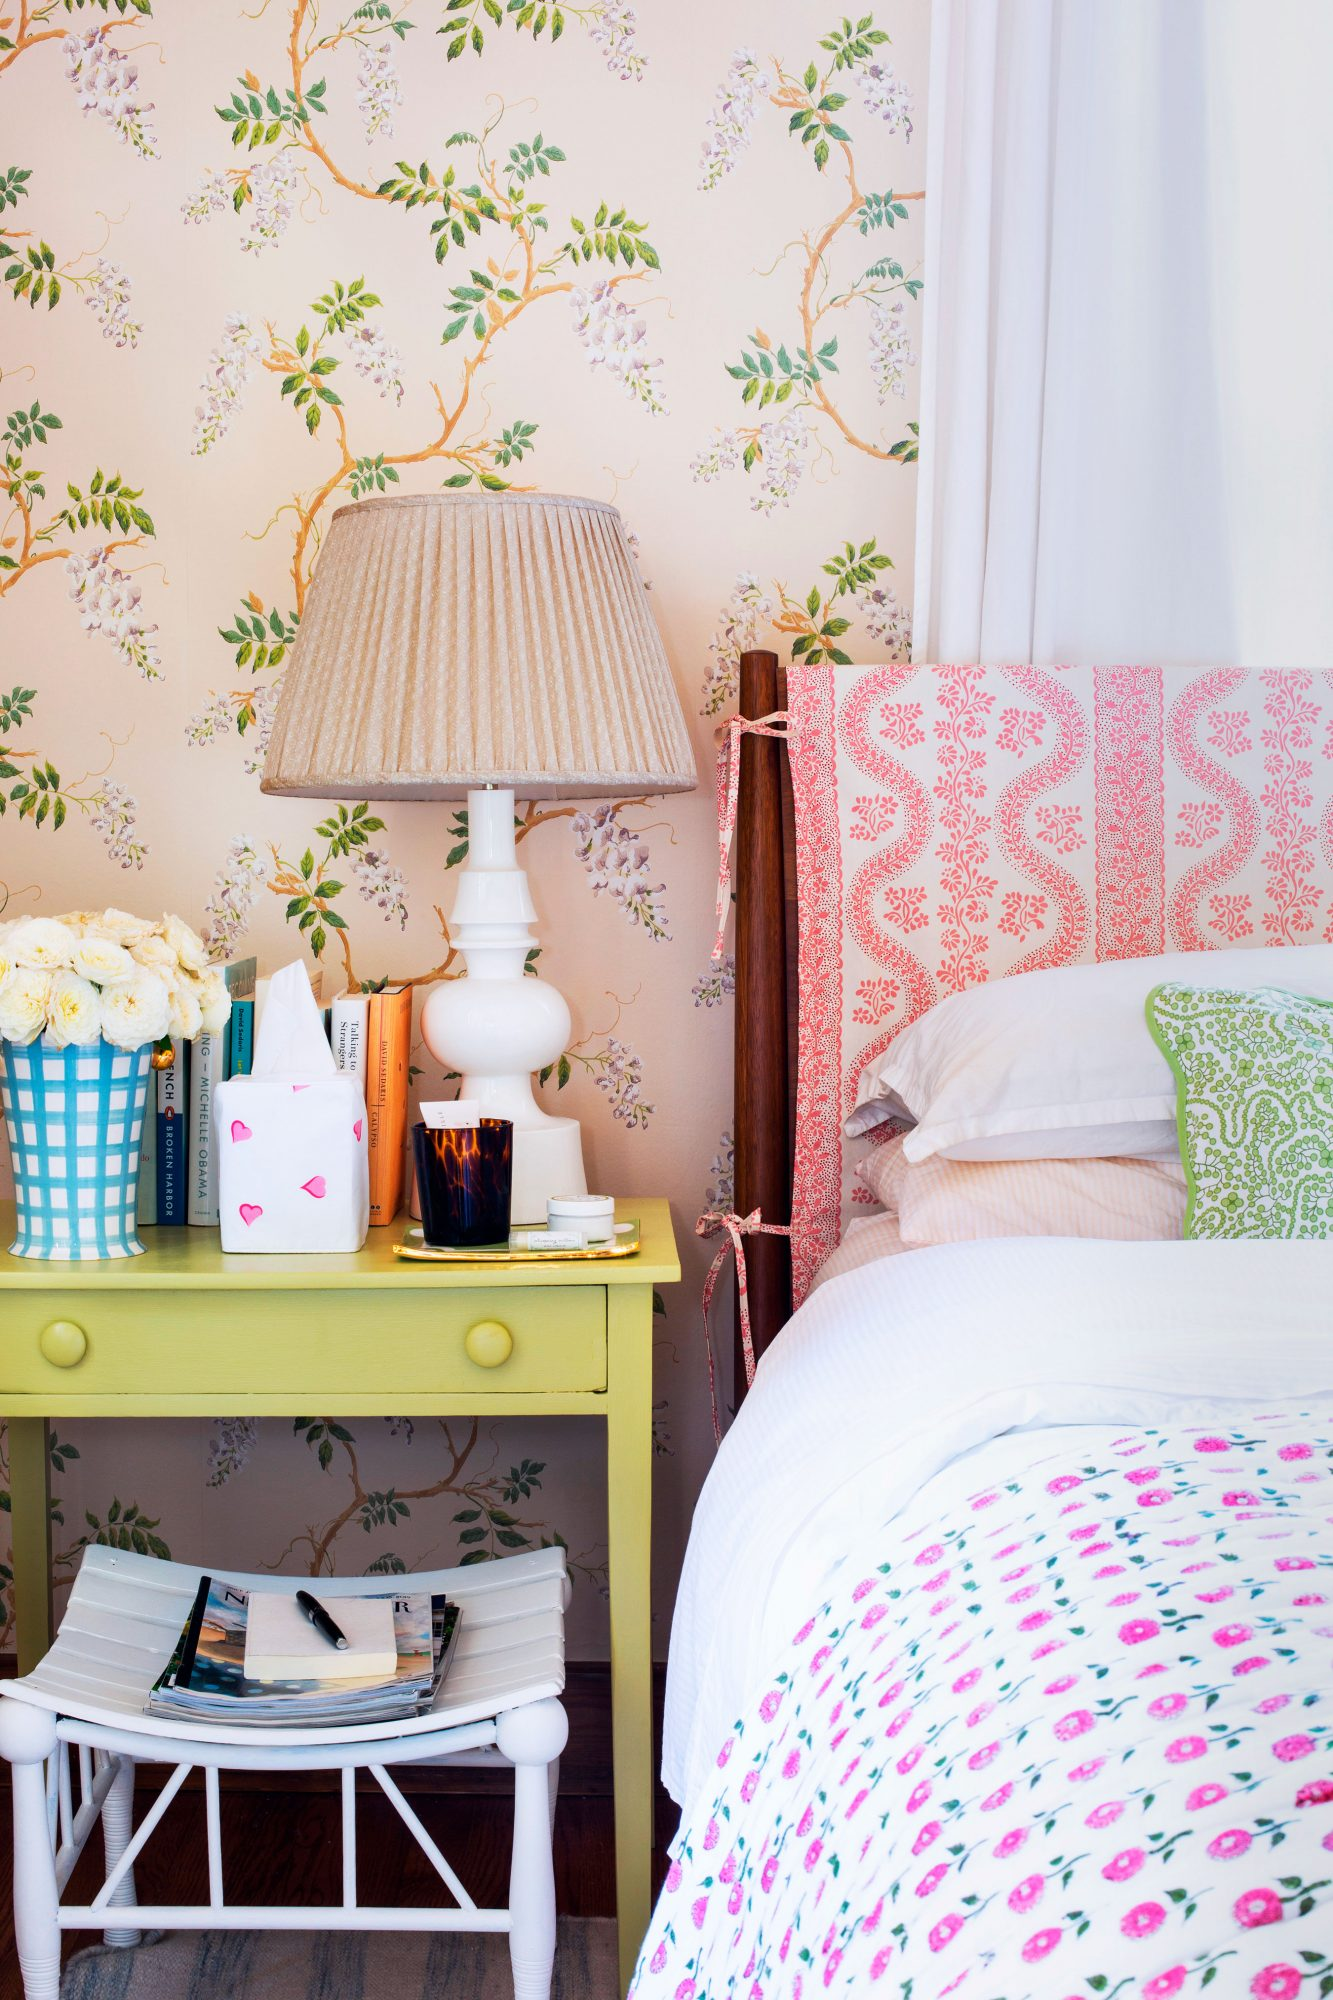 Pink themed bedroom with wallpapered walls